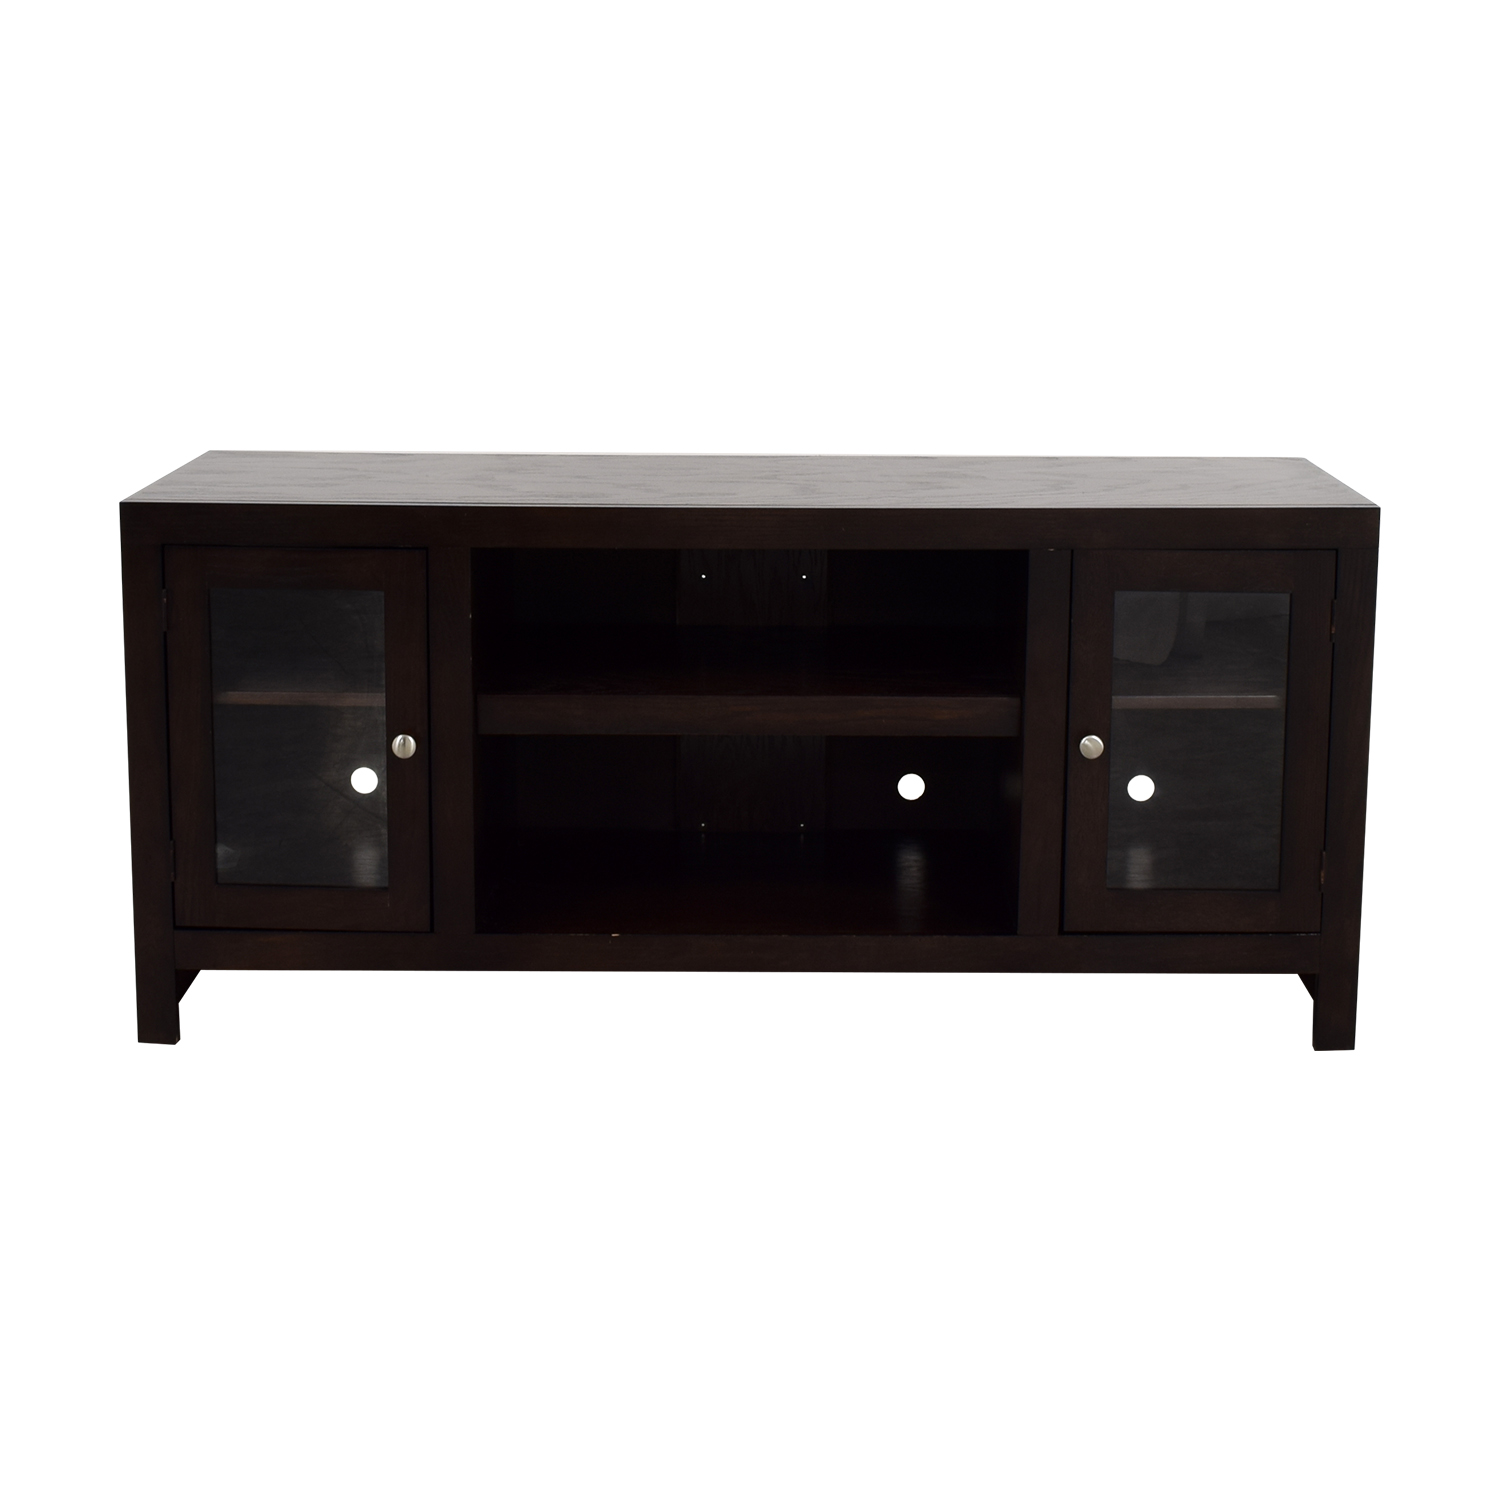 Raymour & Flanigan Raymour & Flanigan TV Console price